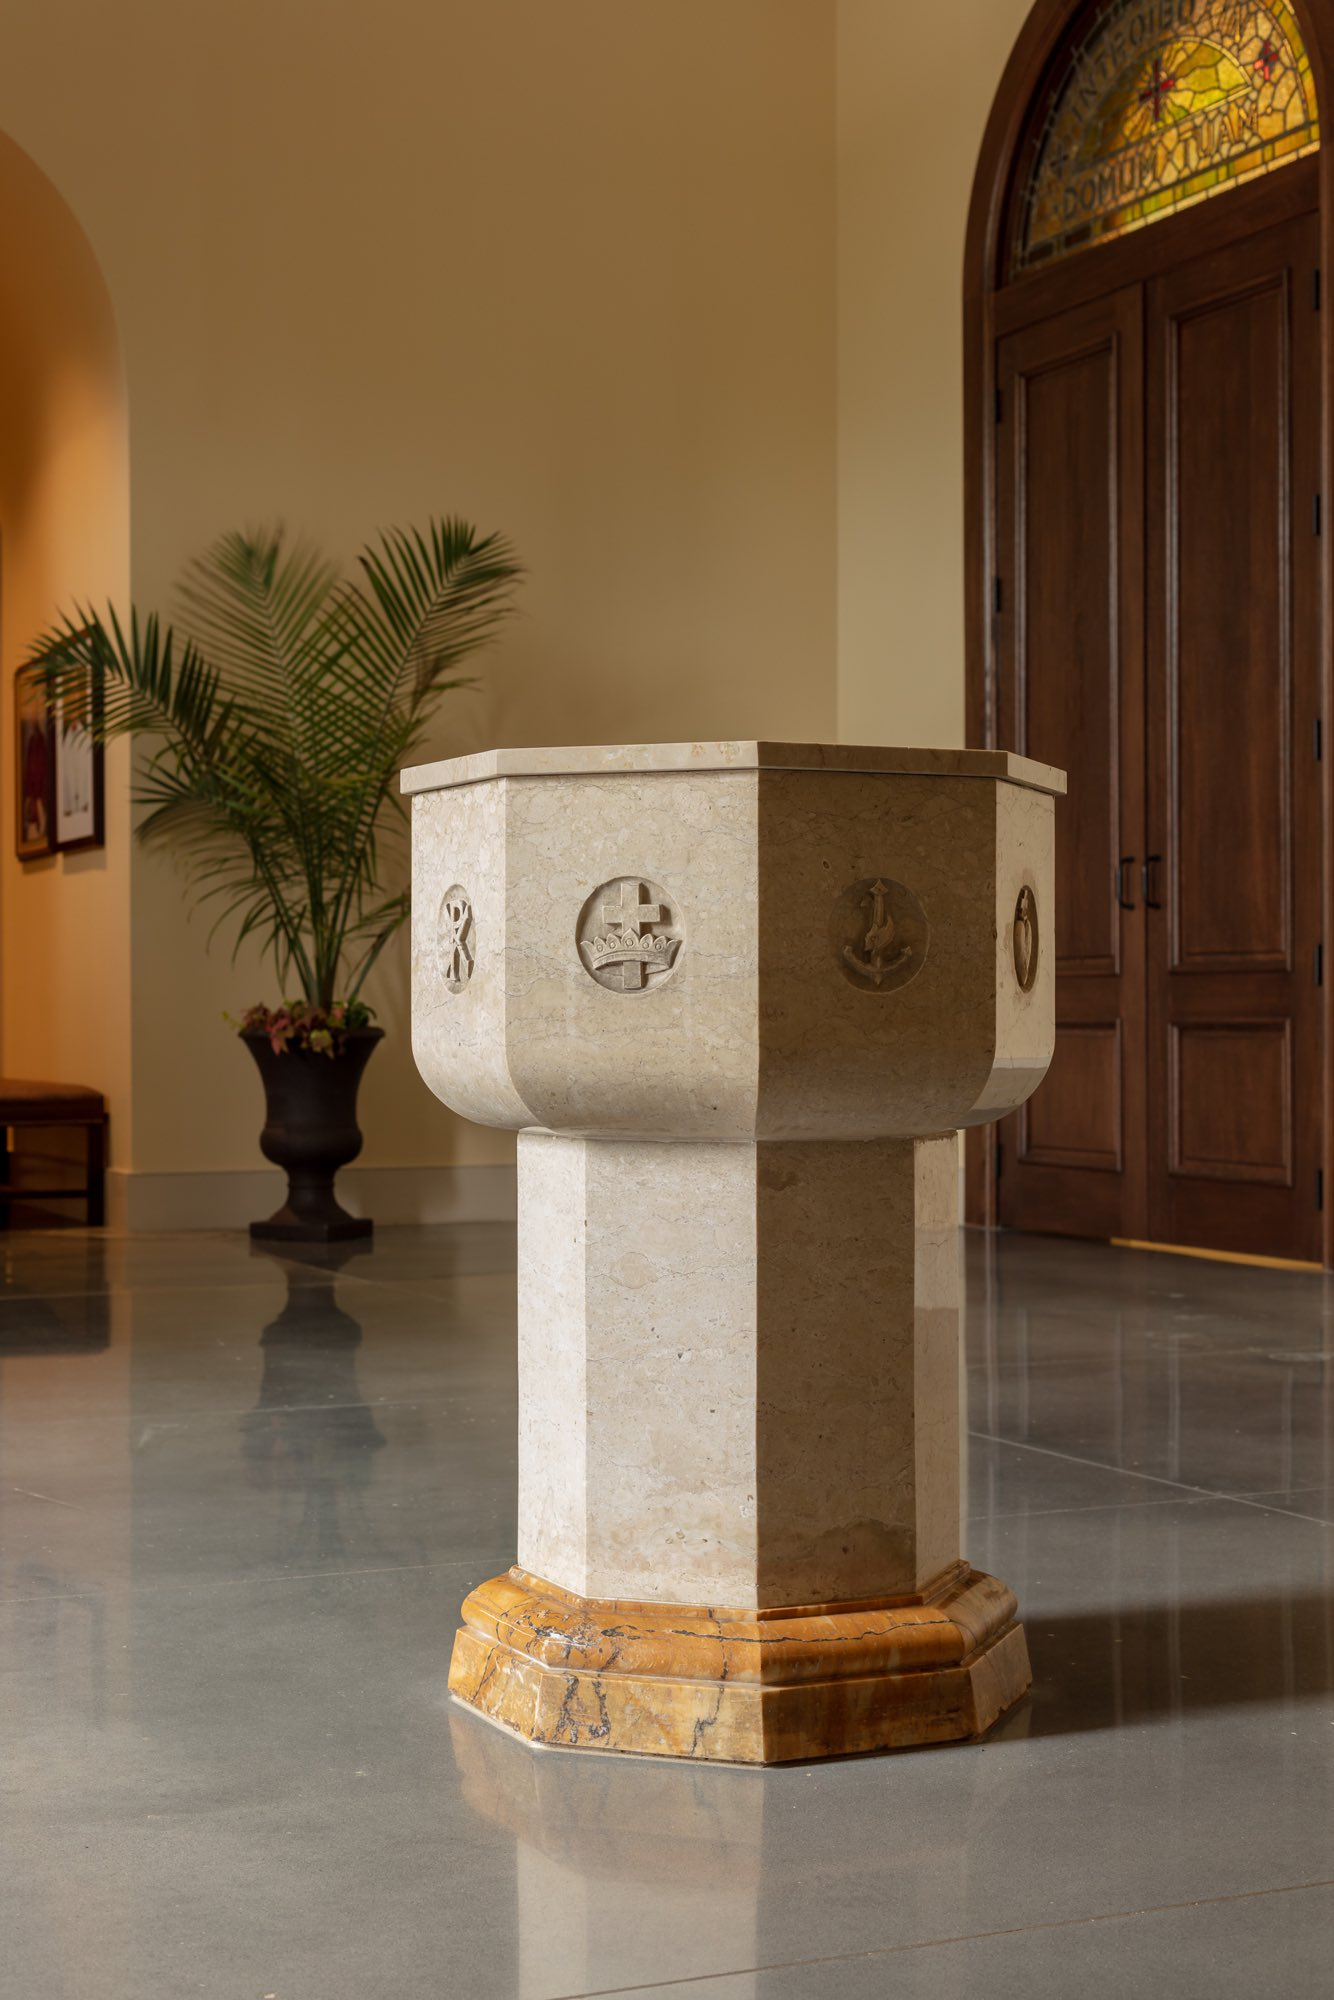 Marble and granite holy water font with Christian symbolism in narthex giallo antico octagon sculpture by Harrison Design